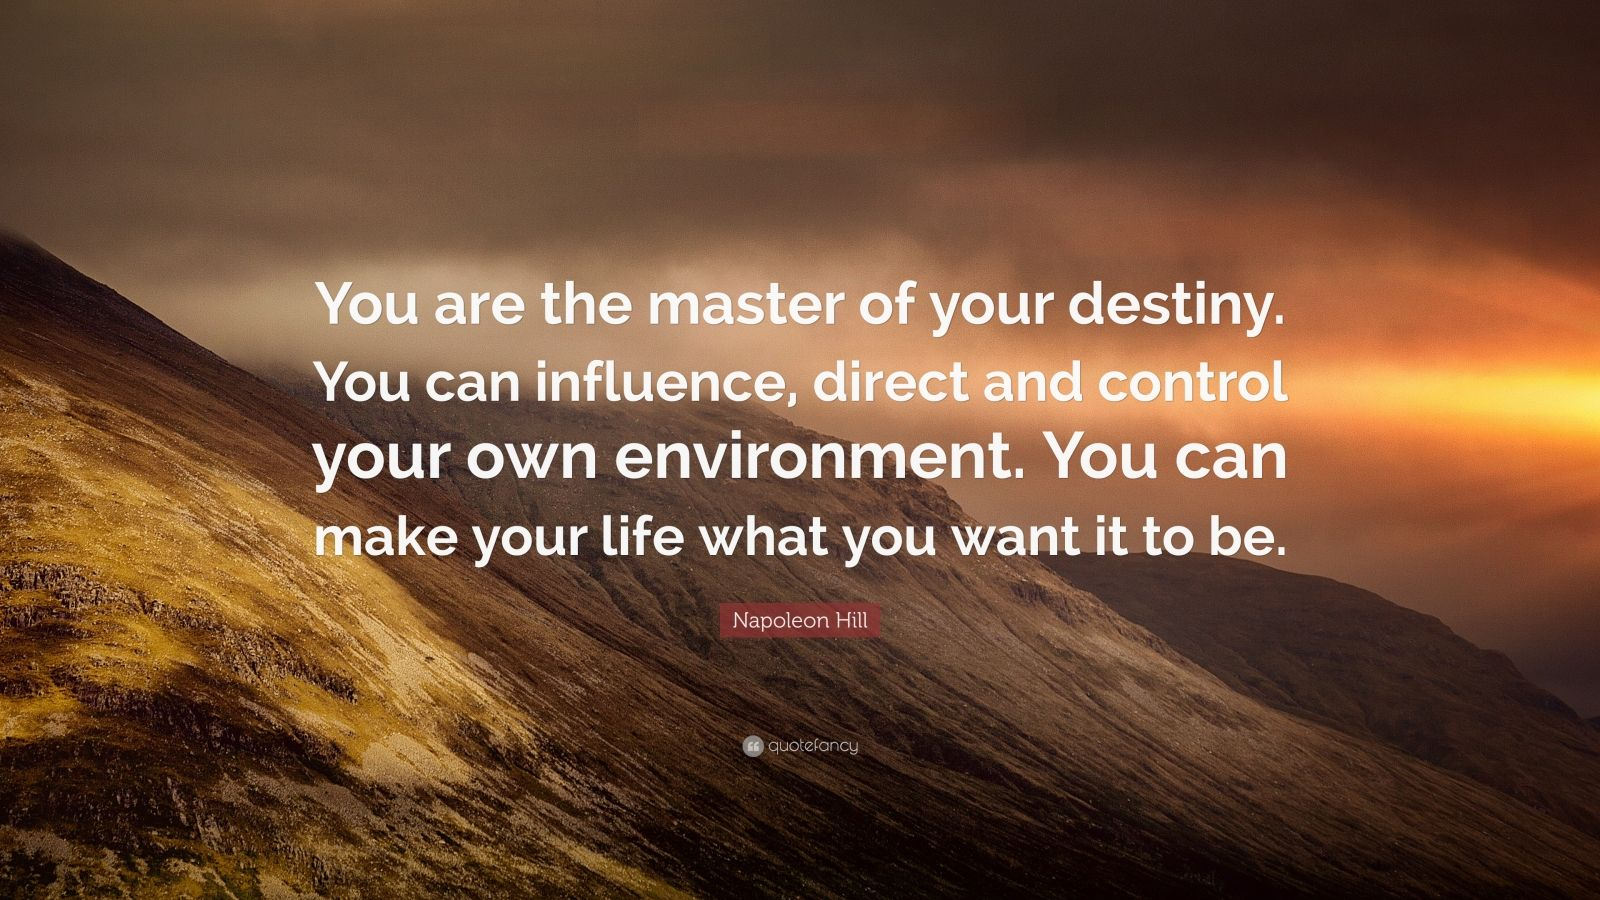 Napoleon Hill Quotes Wallpaper Napoleon Hill Quote You Are The Master Of Your Destiny